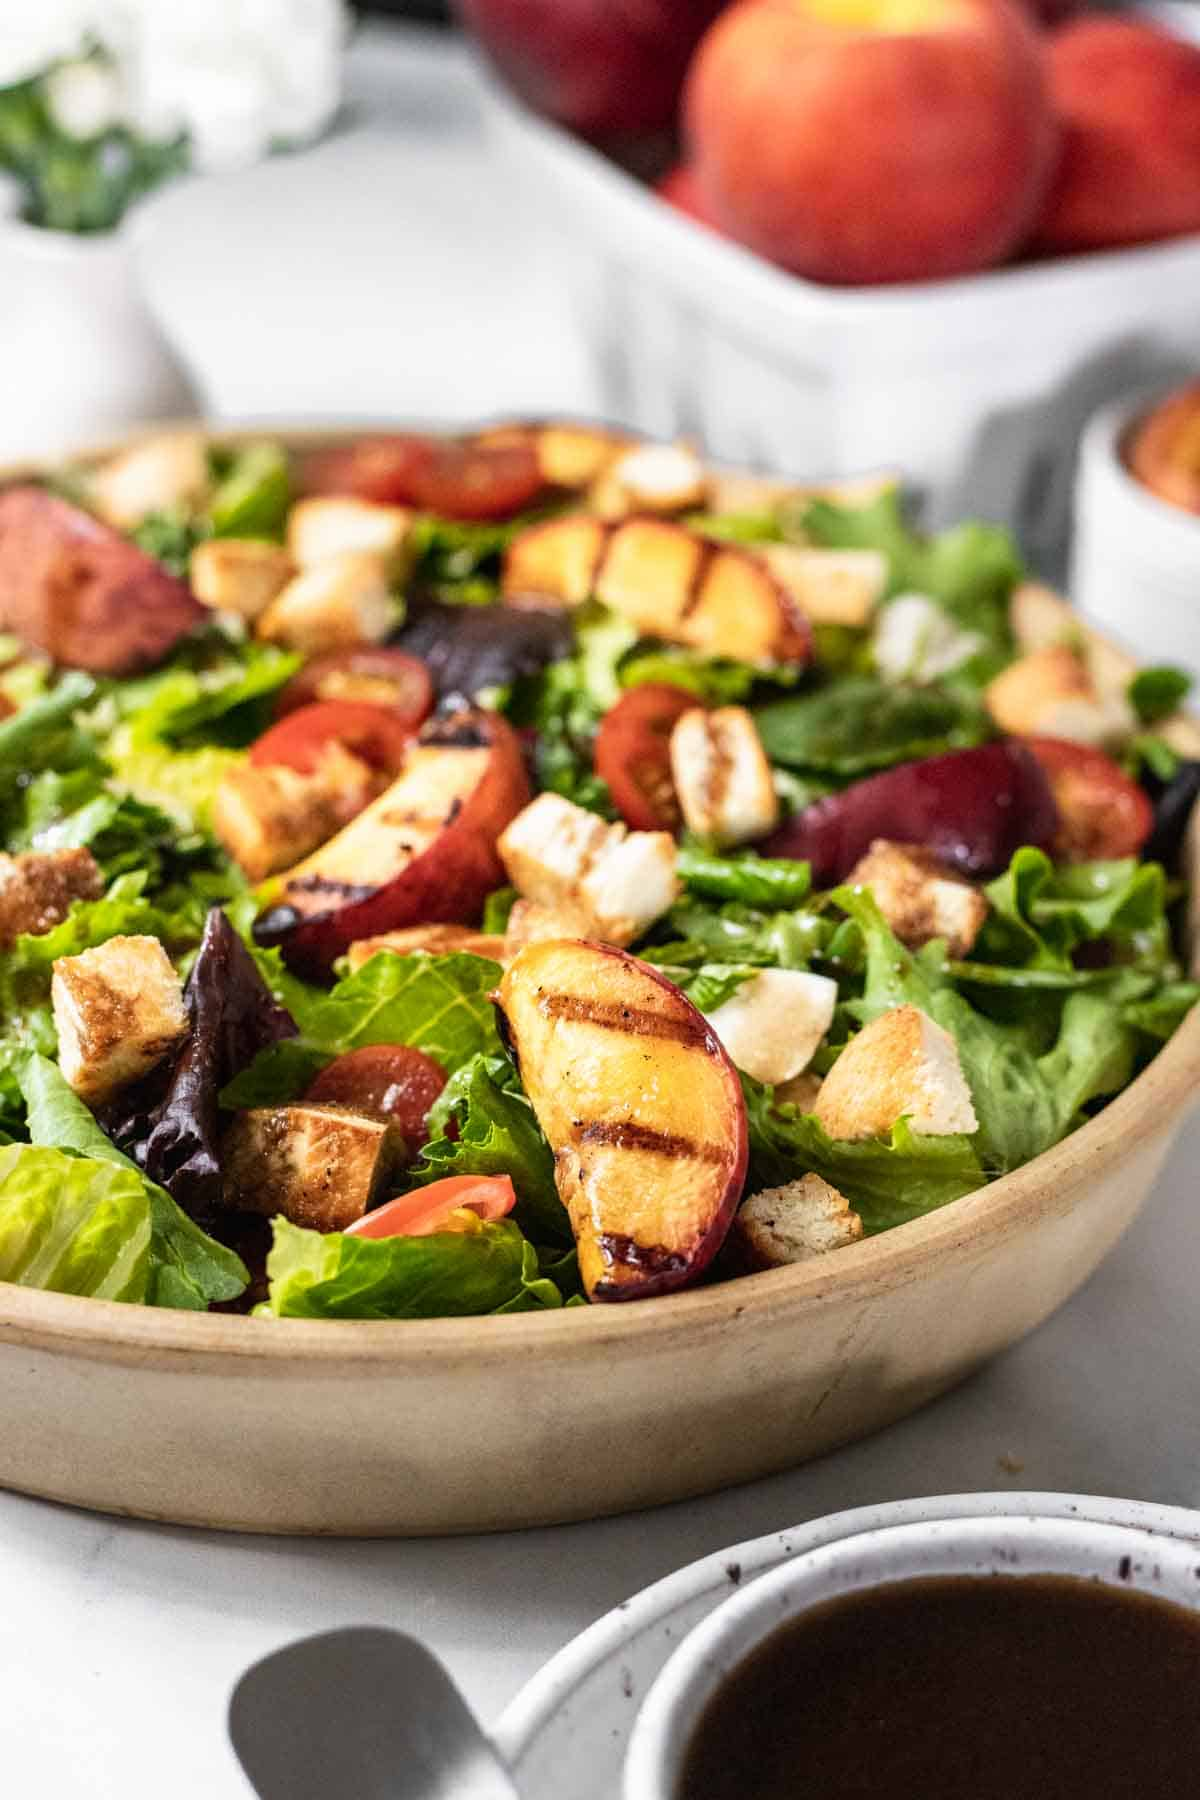 Bruschetta salad in a bowl with grilled peaches and whole fresh peaches in a basket behind it.